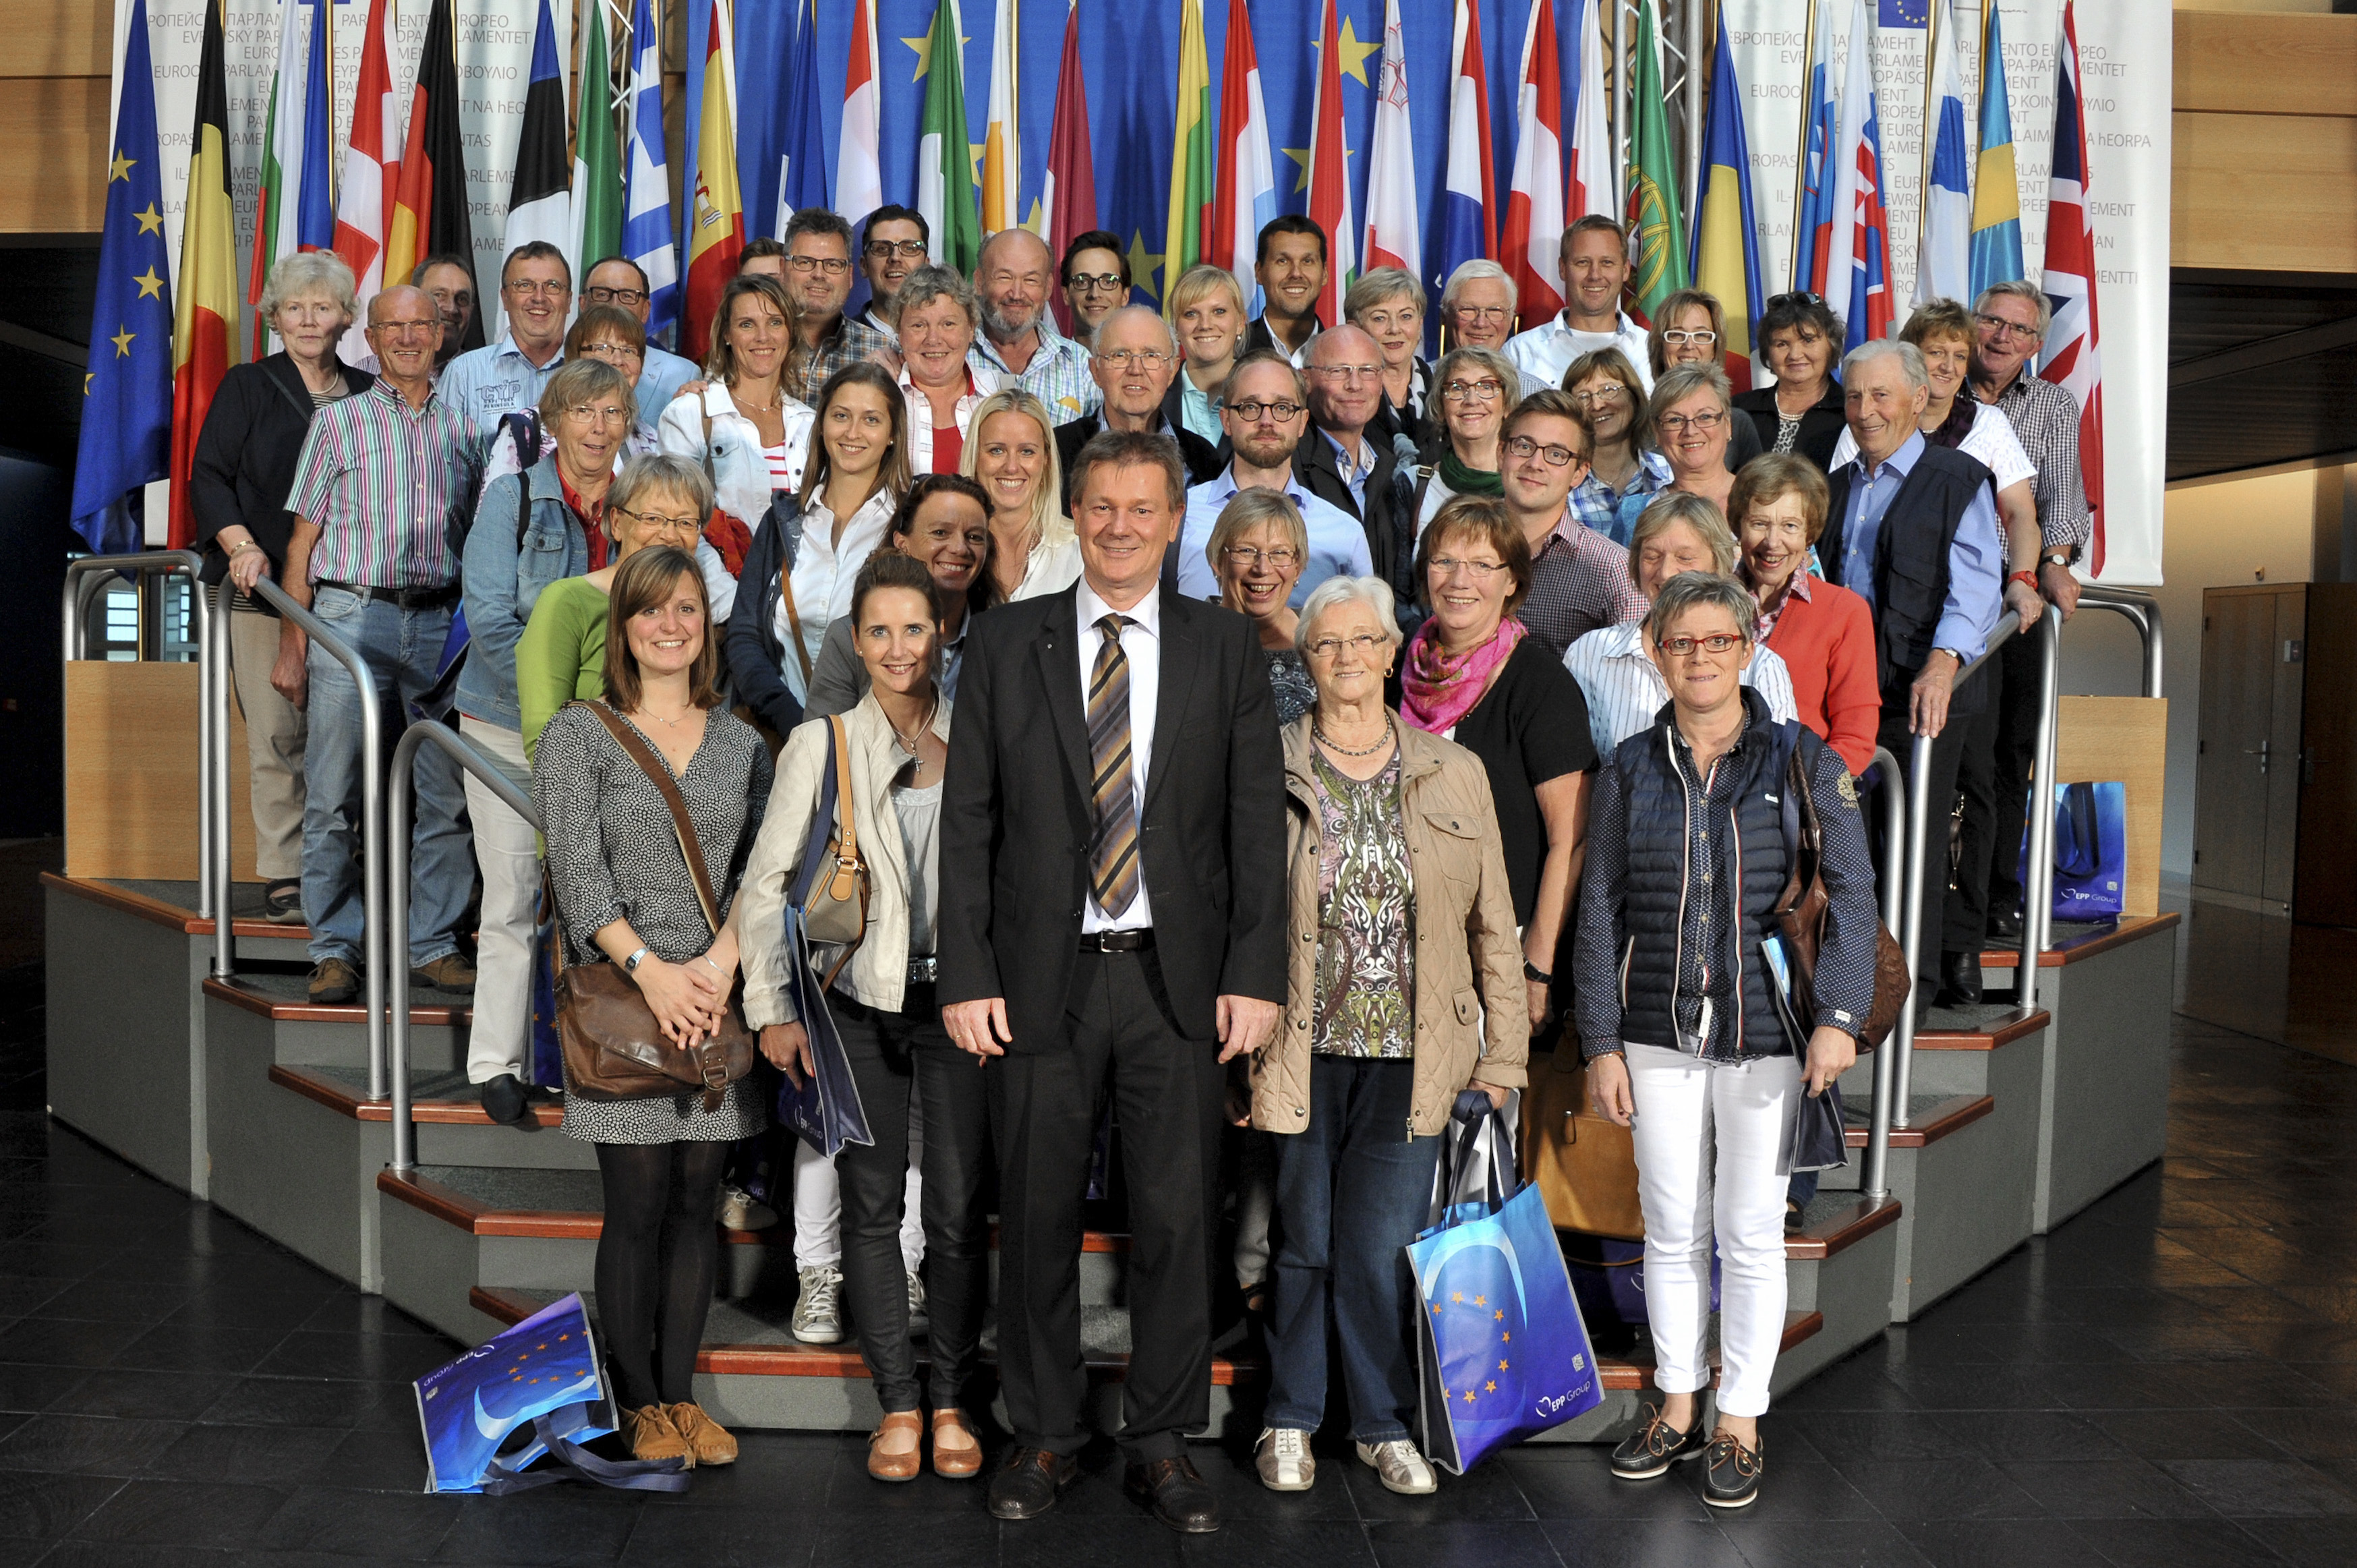 Visitors group in Strasbourg Markus PIEPER